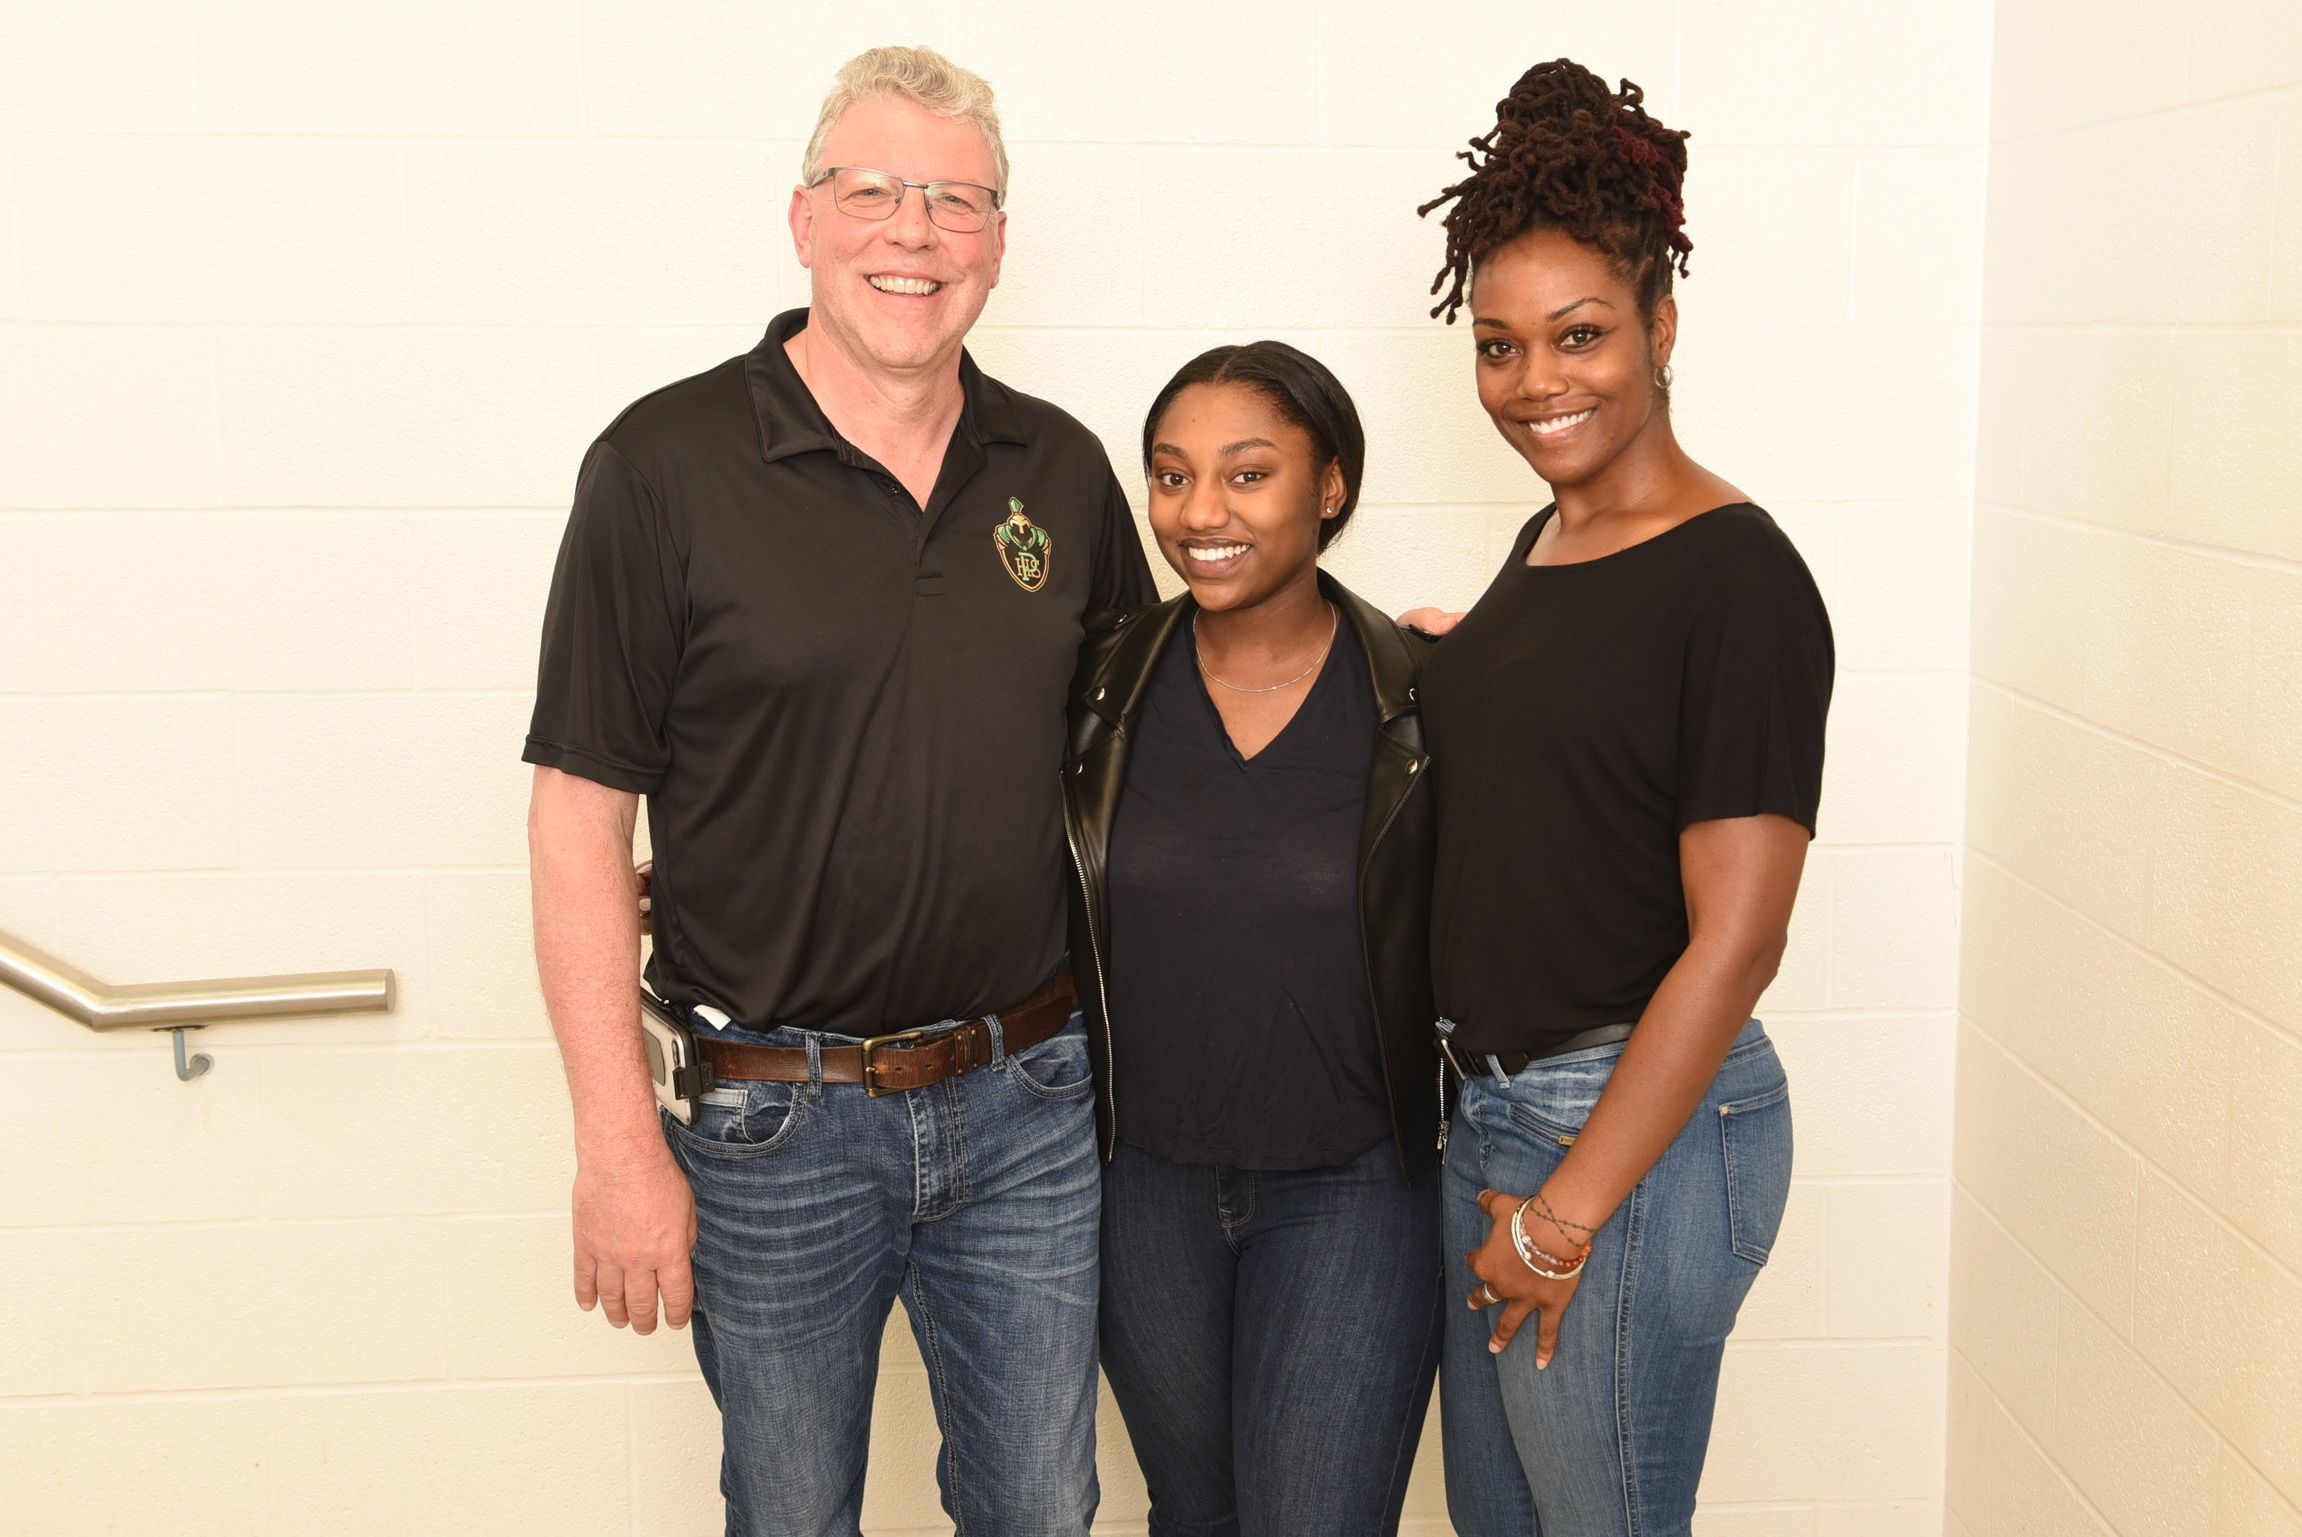 Risann Wright with Pickering High School Principal Randy Pennant and outgoing VP Melissa Hunte